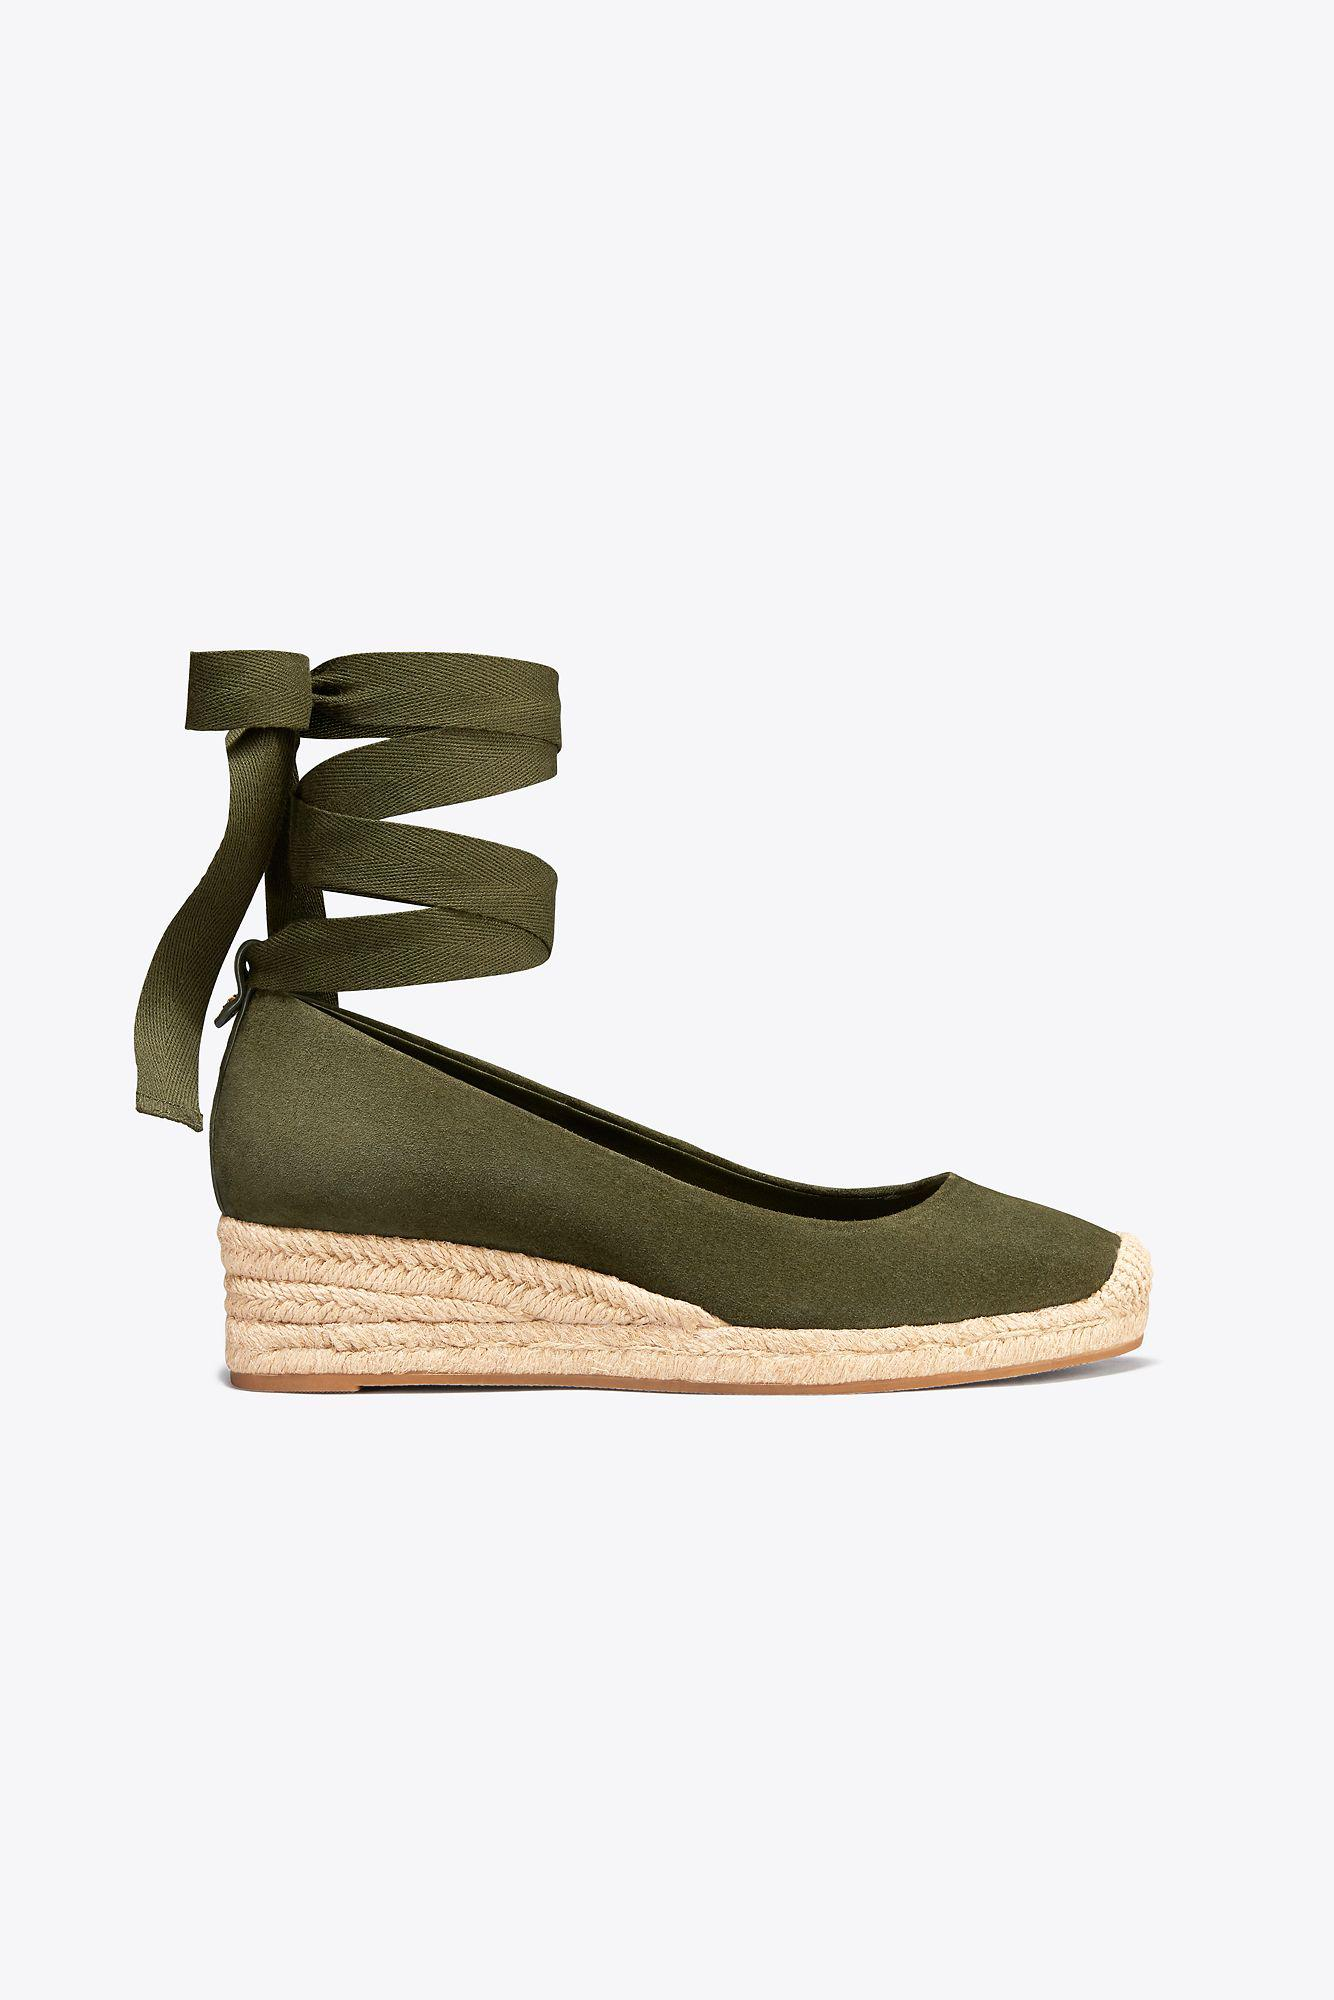 5be6bd781 Tory Burch Heather Suede Wedge Espadrille in Green - Lyst